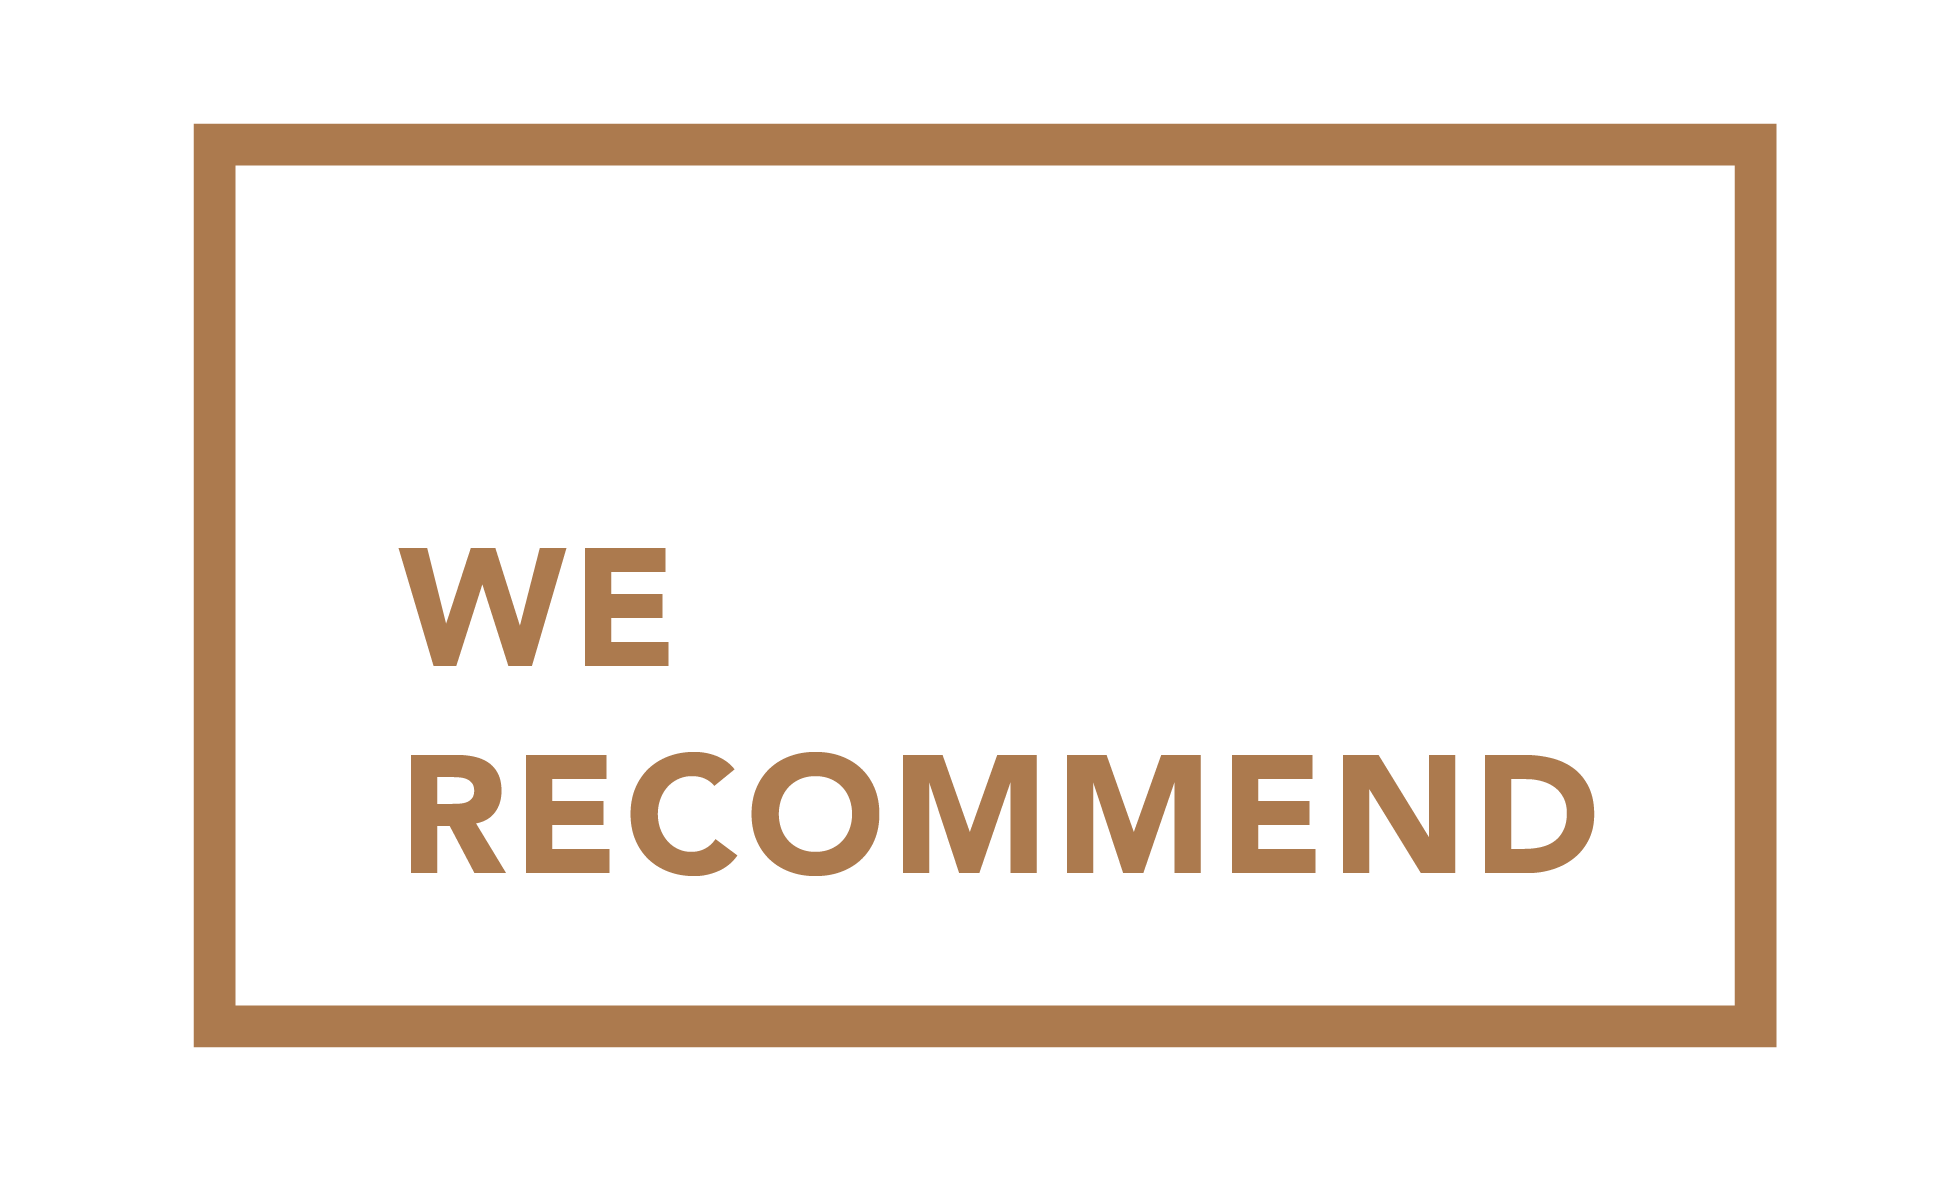 WeRecommend.png